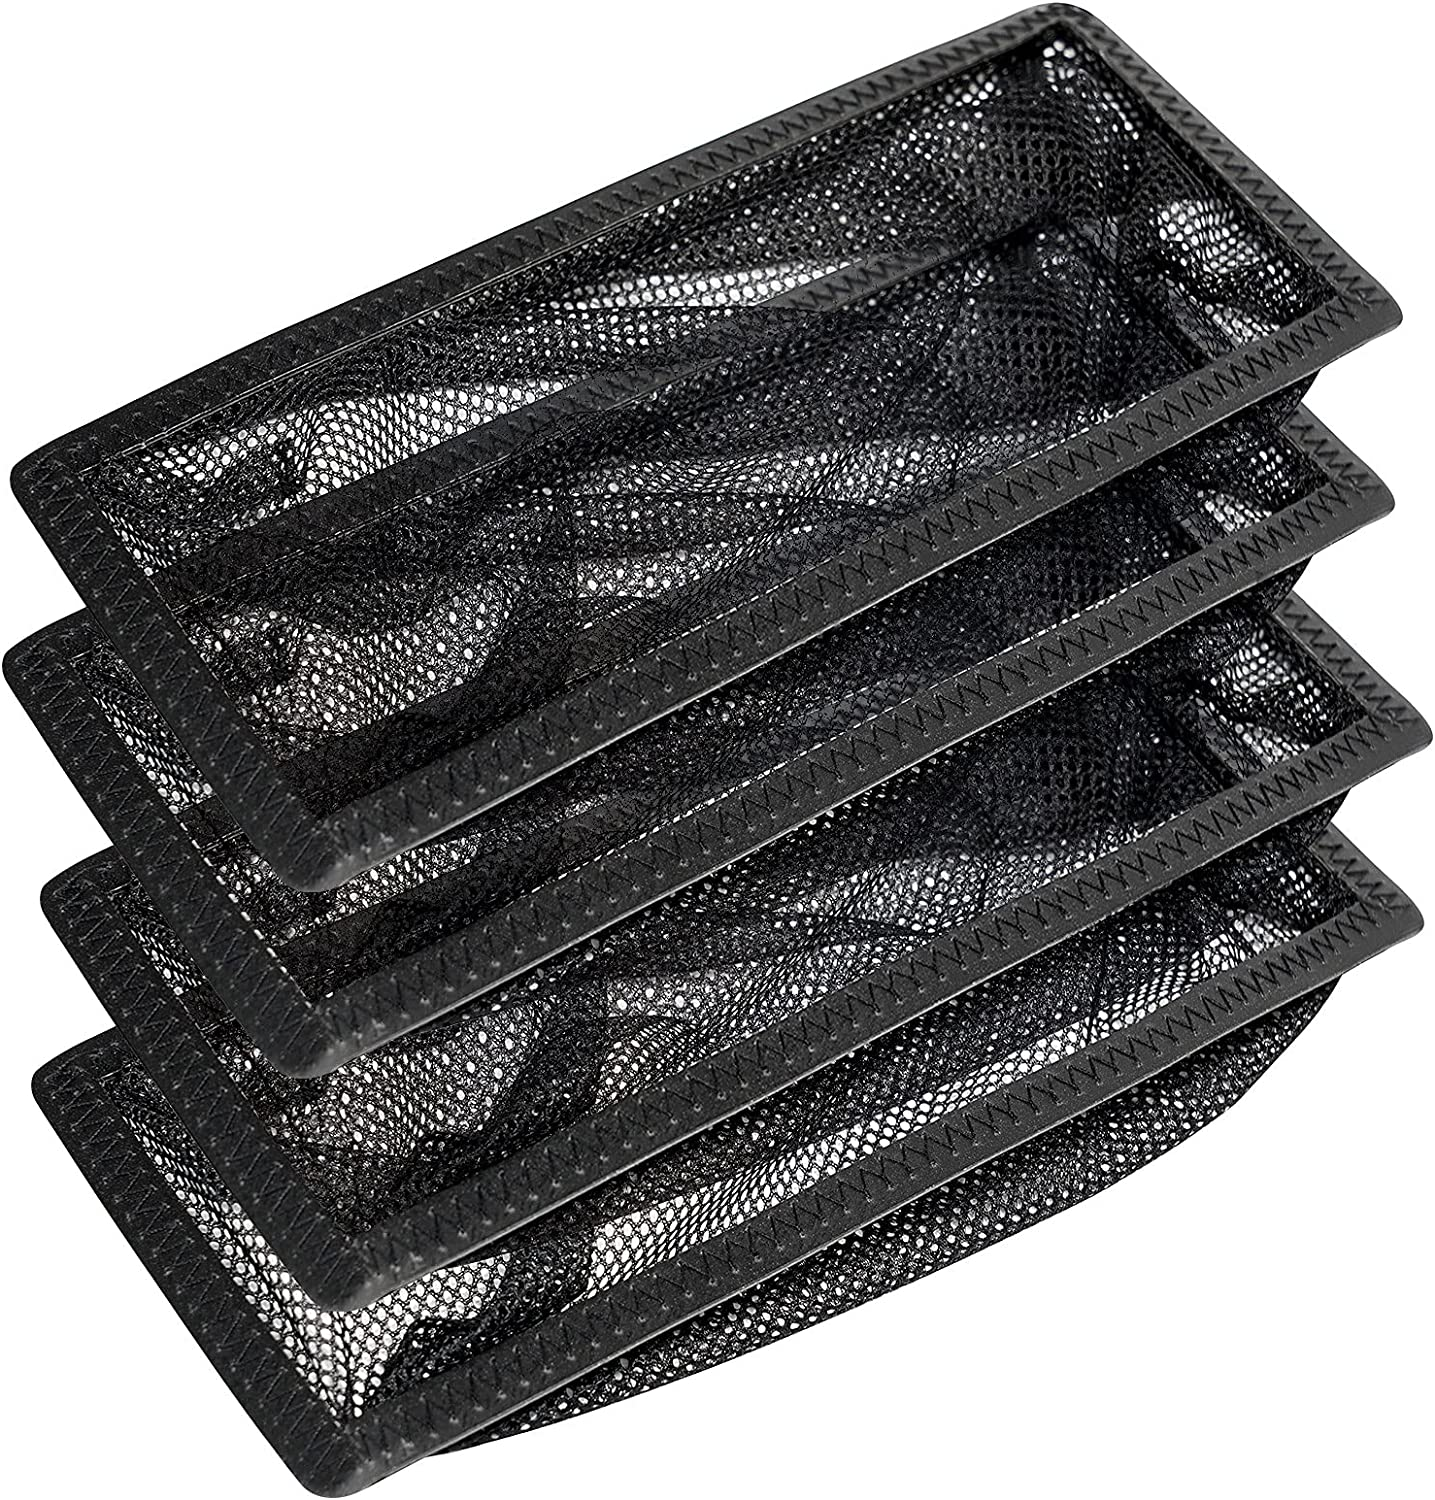 Floor Register Trap/Cover - Screen for Home Air Vent Filters 4